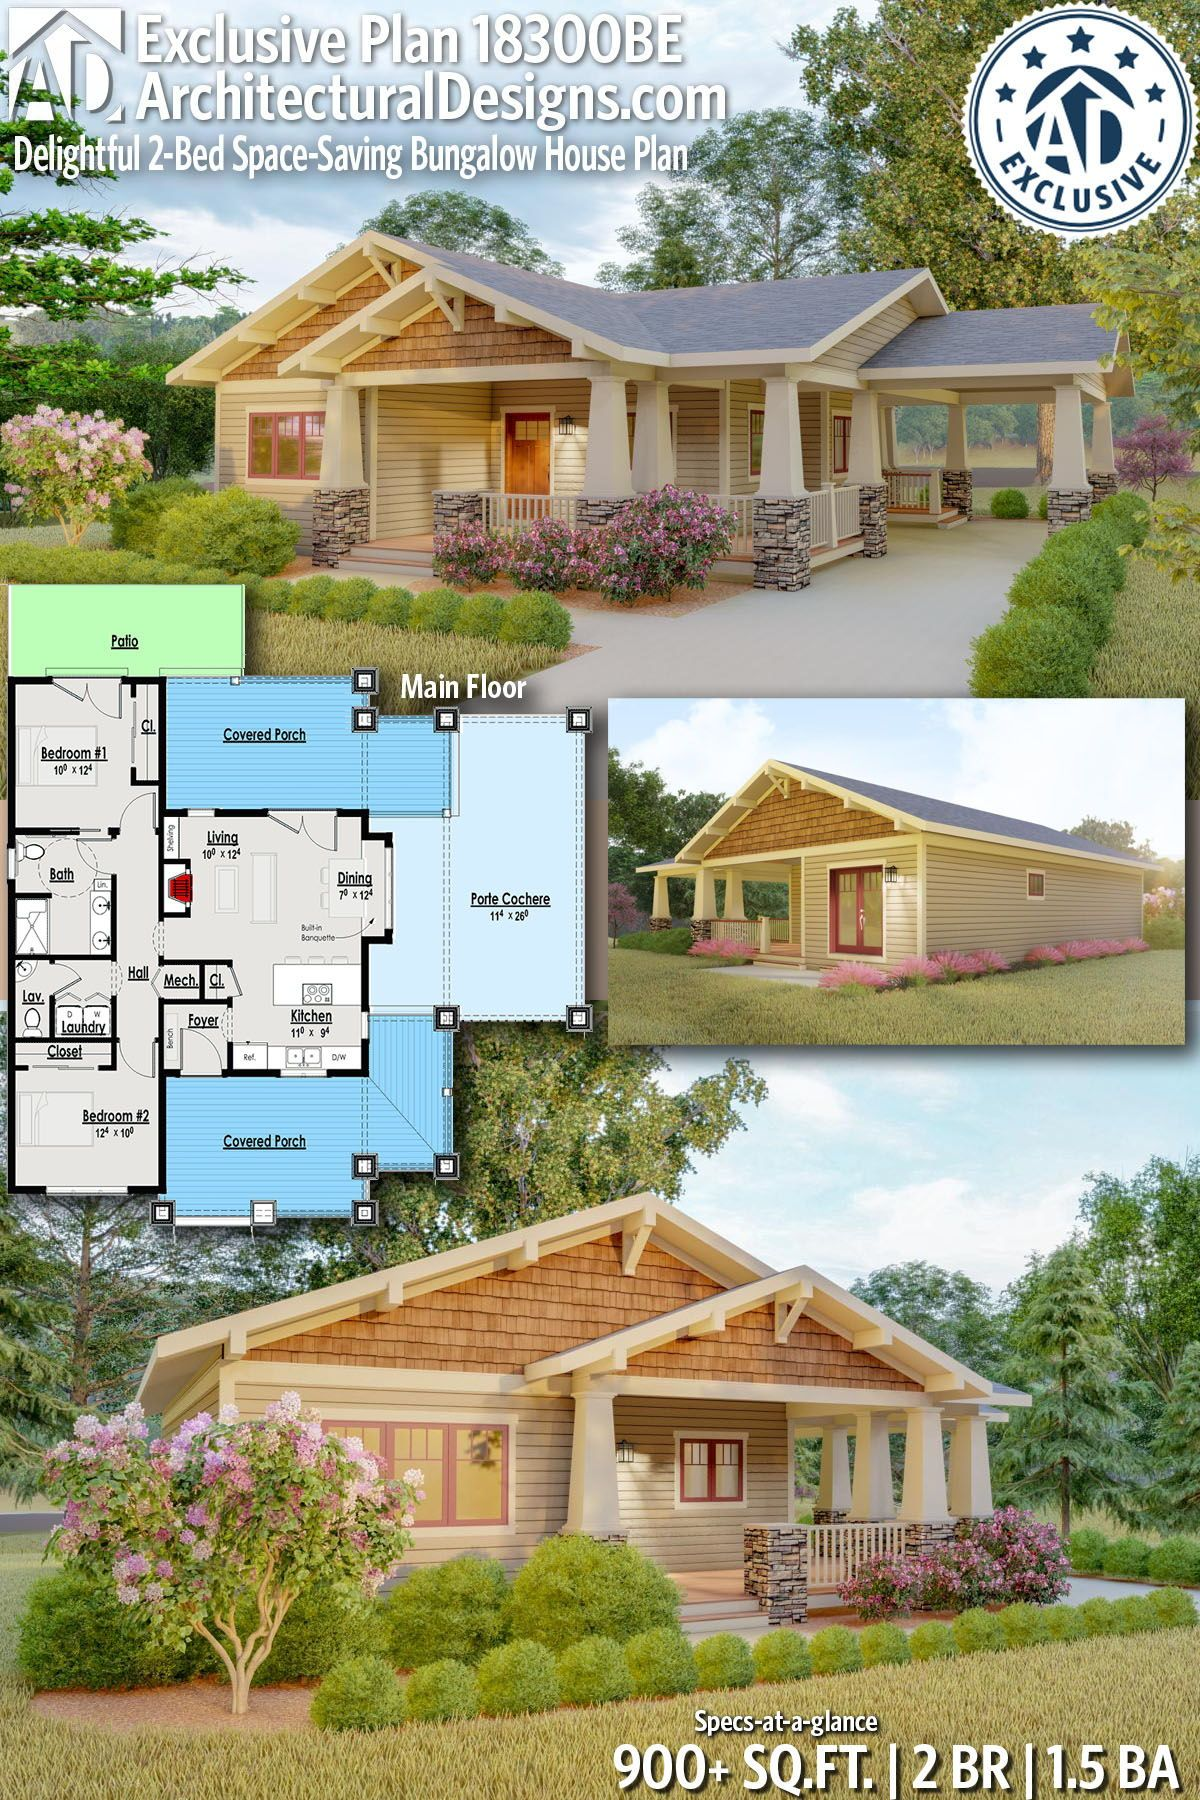 Plan 18300be Delightful 2 Bed Space Saving Bungalow House Plan Bungalow House Plans House Plans Bungalow Style House Plans